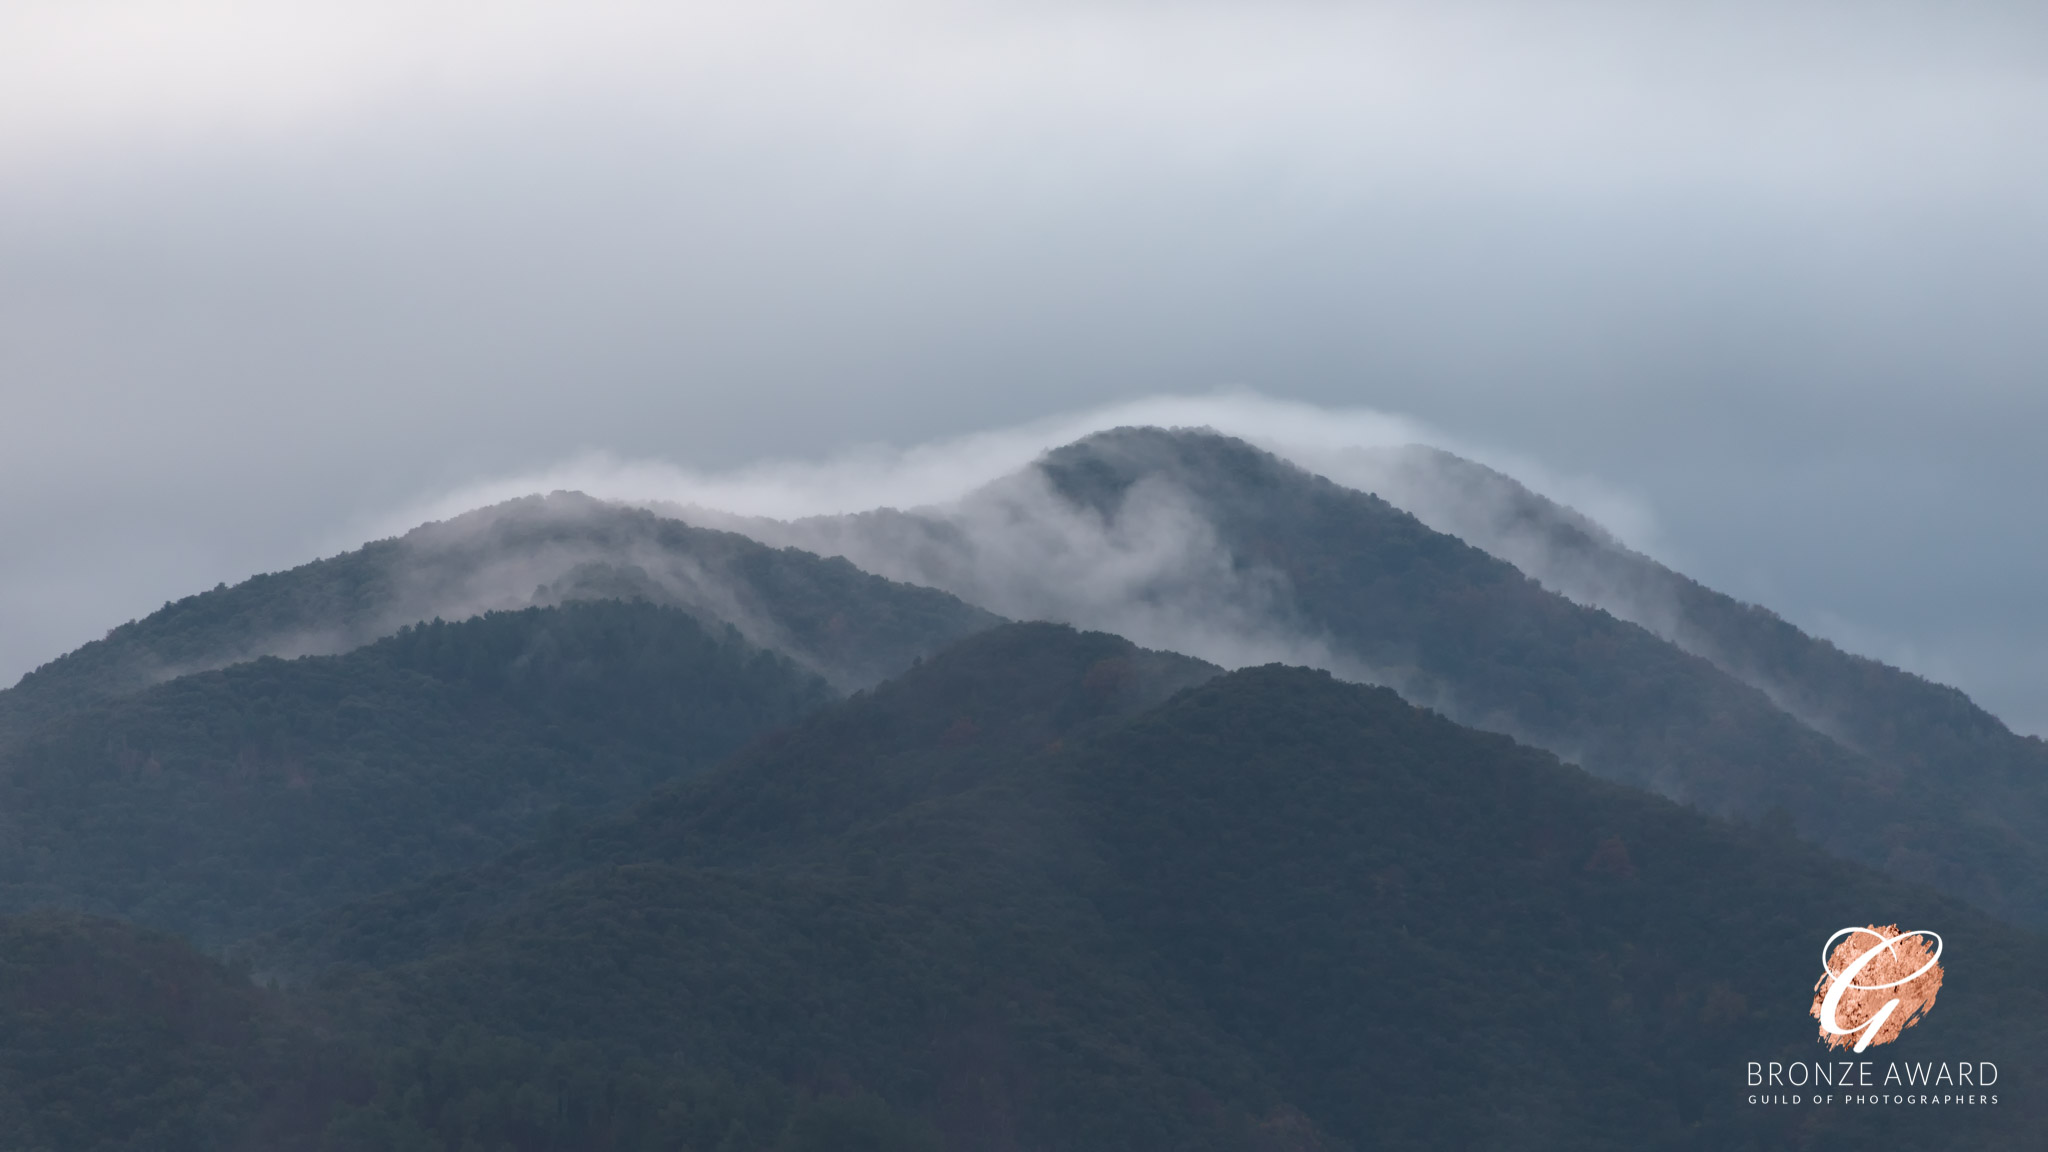 Mist over a forested mountain top in the Parc des Cevennes, France